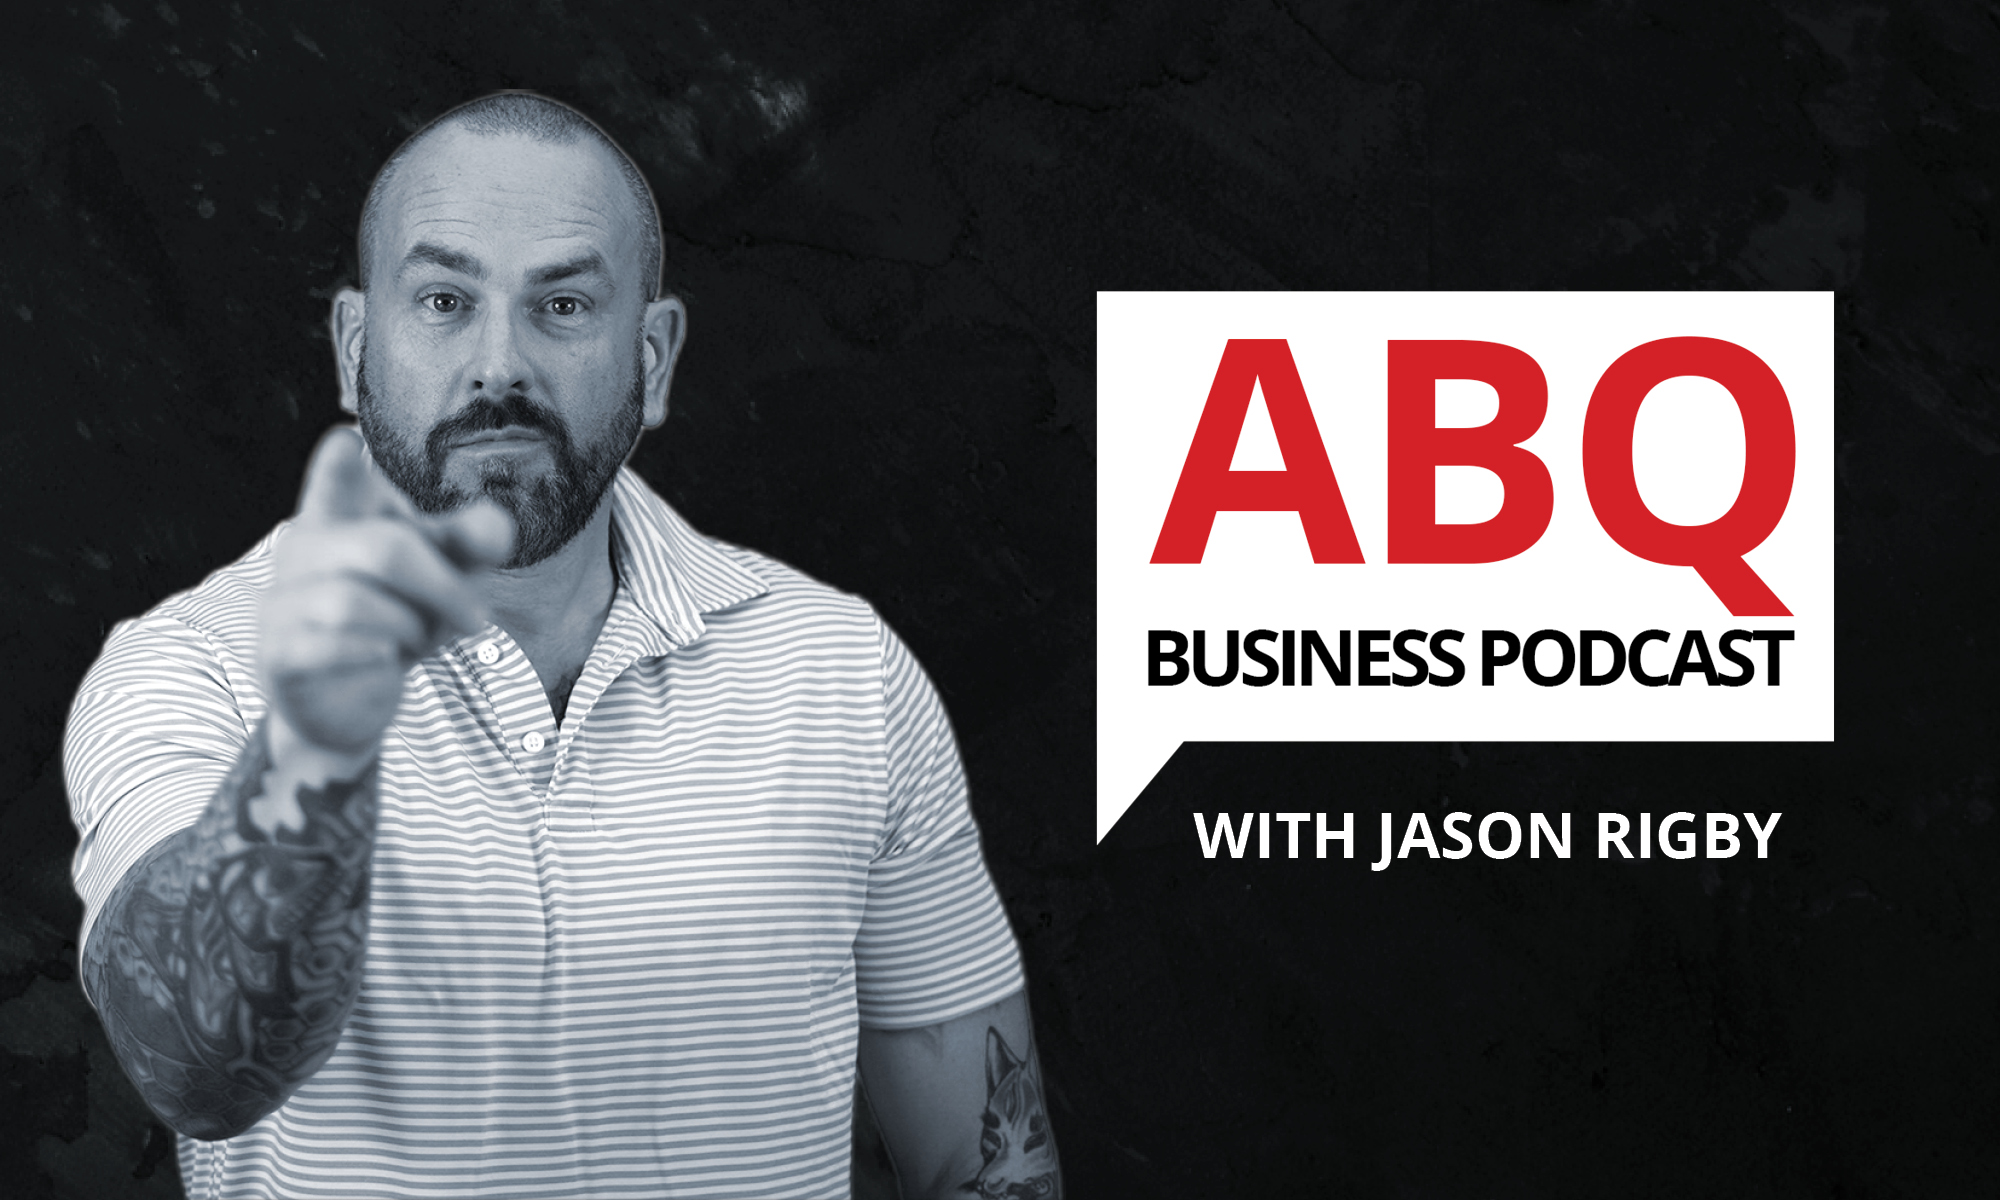 abqpodcast